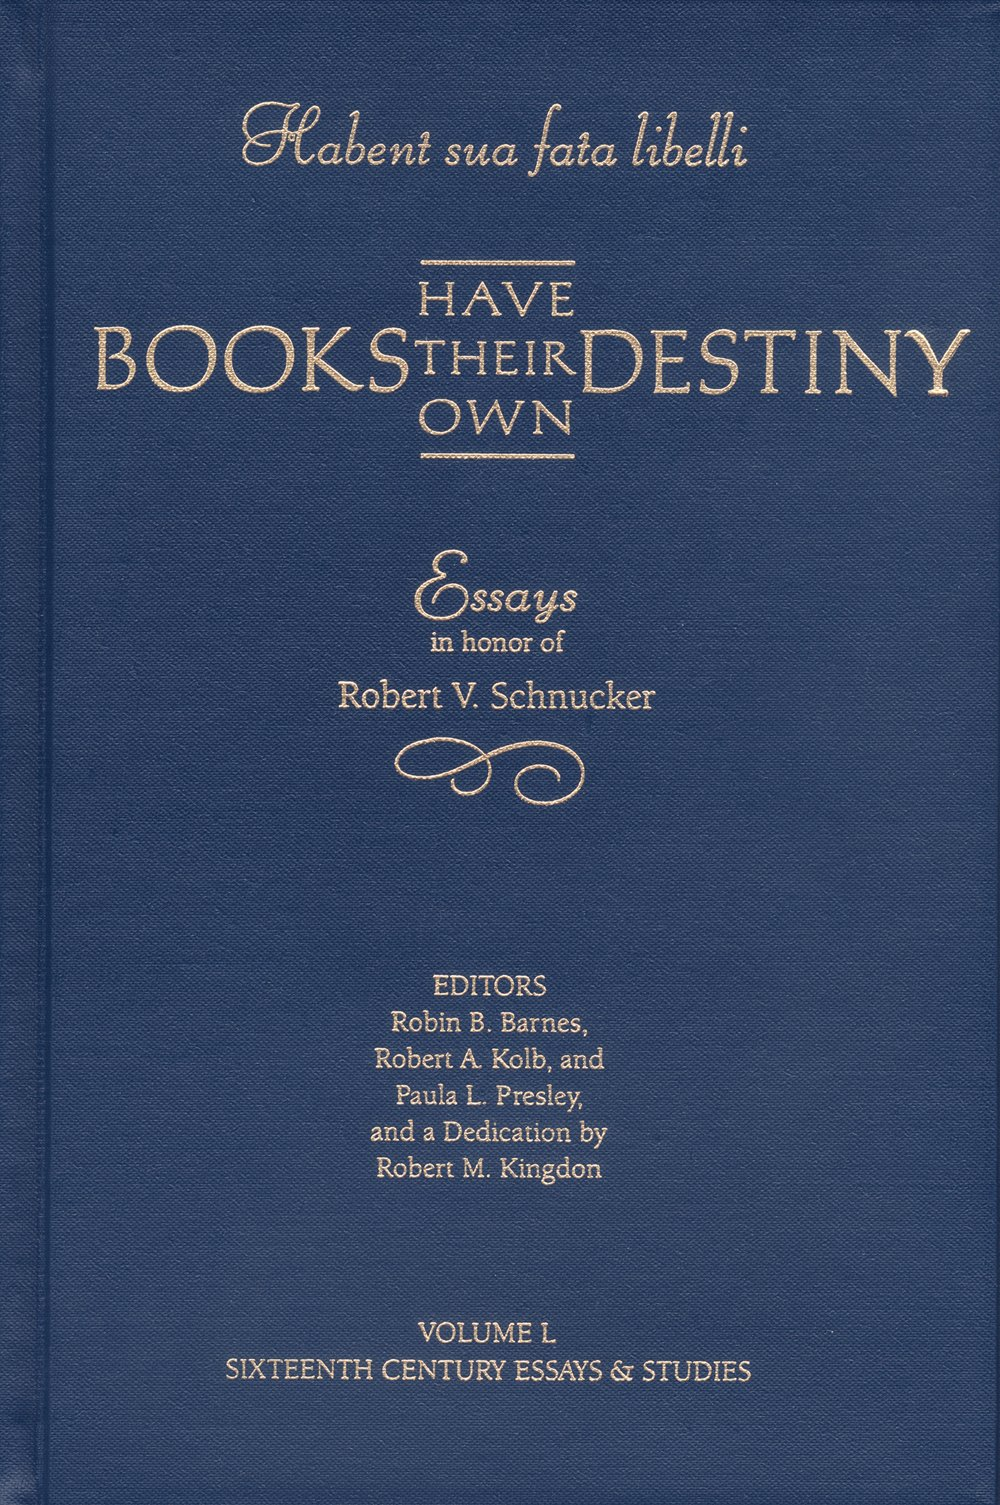 Habent Sua Fata Libelli/Books Have Their Own Destiny: Essays in Honor of Robert V. Schnucker (Sixteenth Century Essays & Studies) by Brand: Truman State University Press